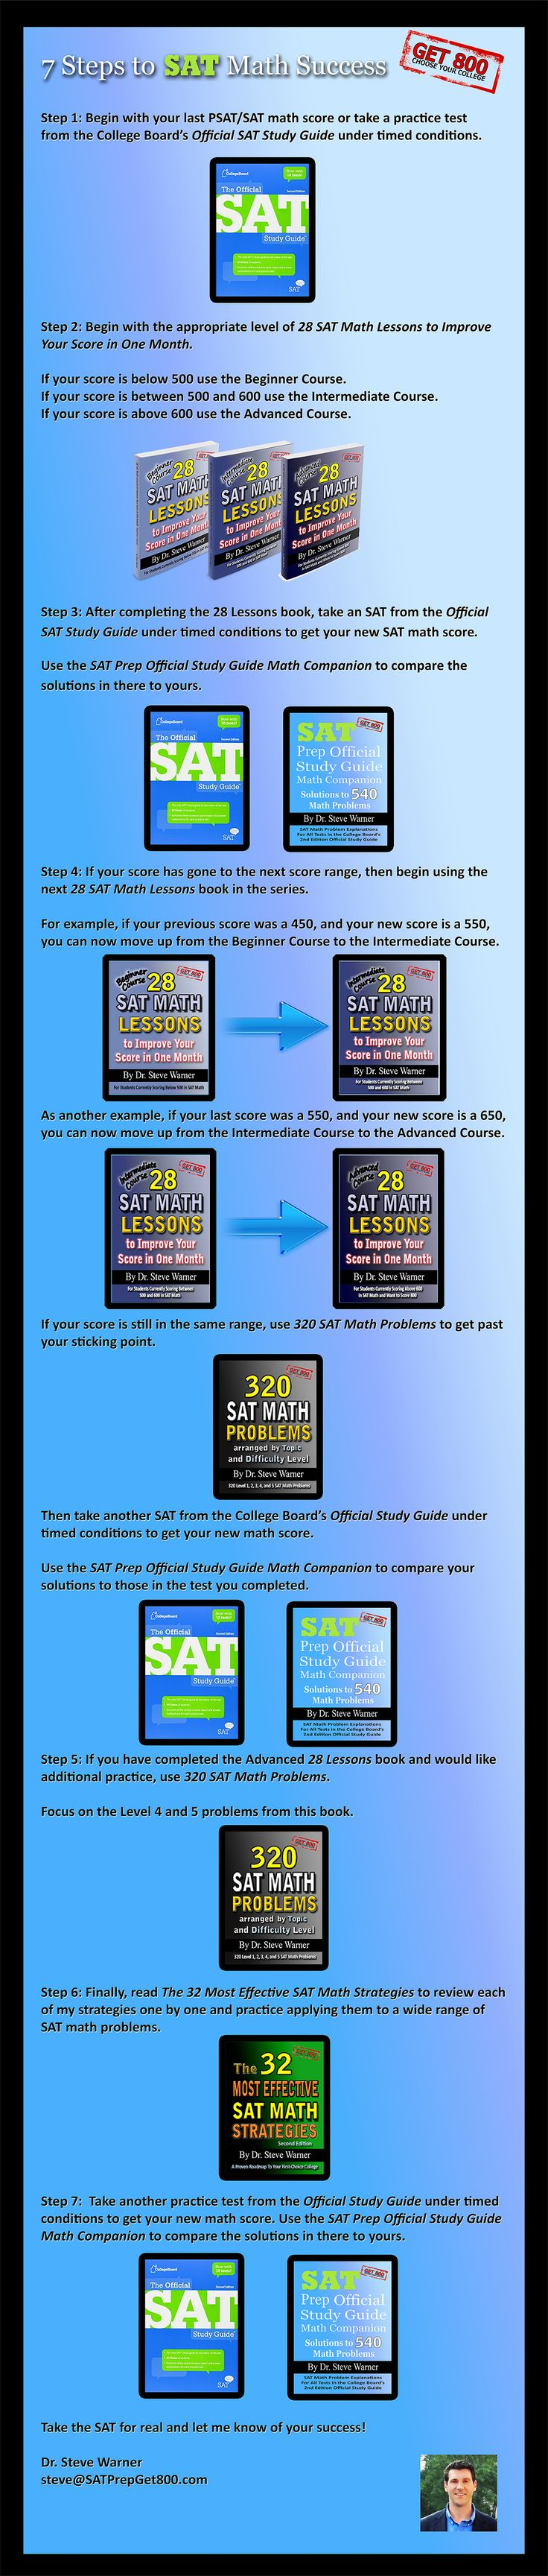 The 7 Steps to SAT math success. http://satprepget800.com/the-only-7-steps-you-need-for-sat-math-success/